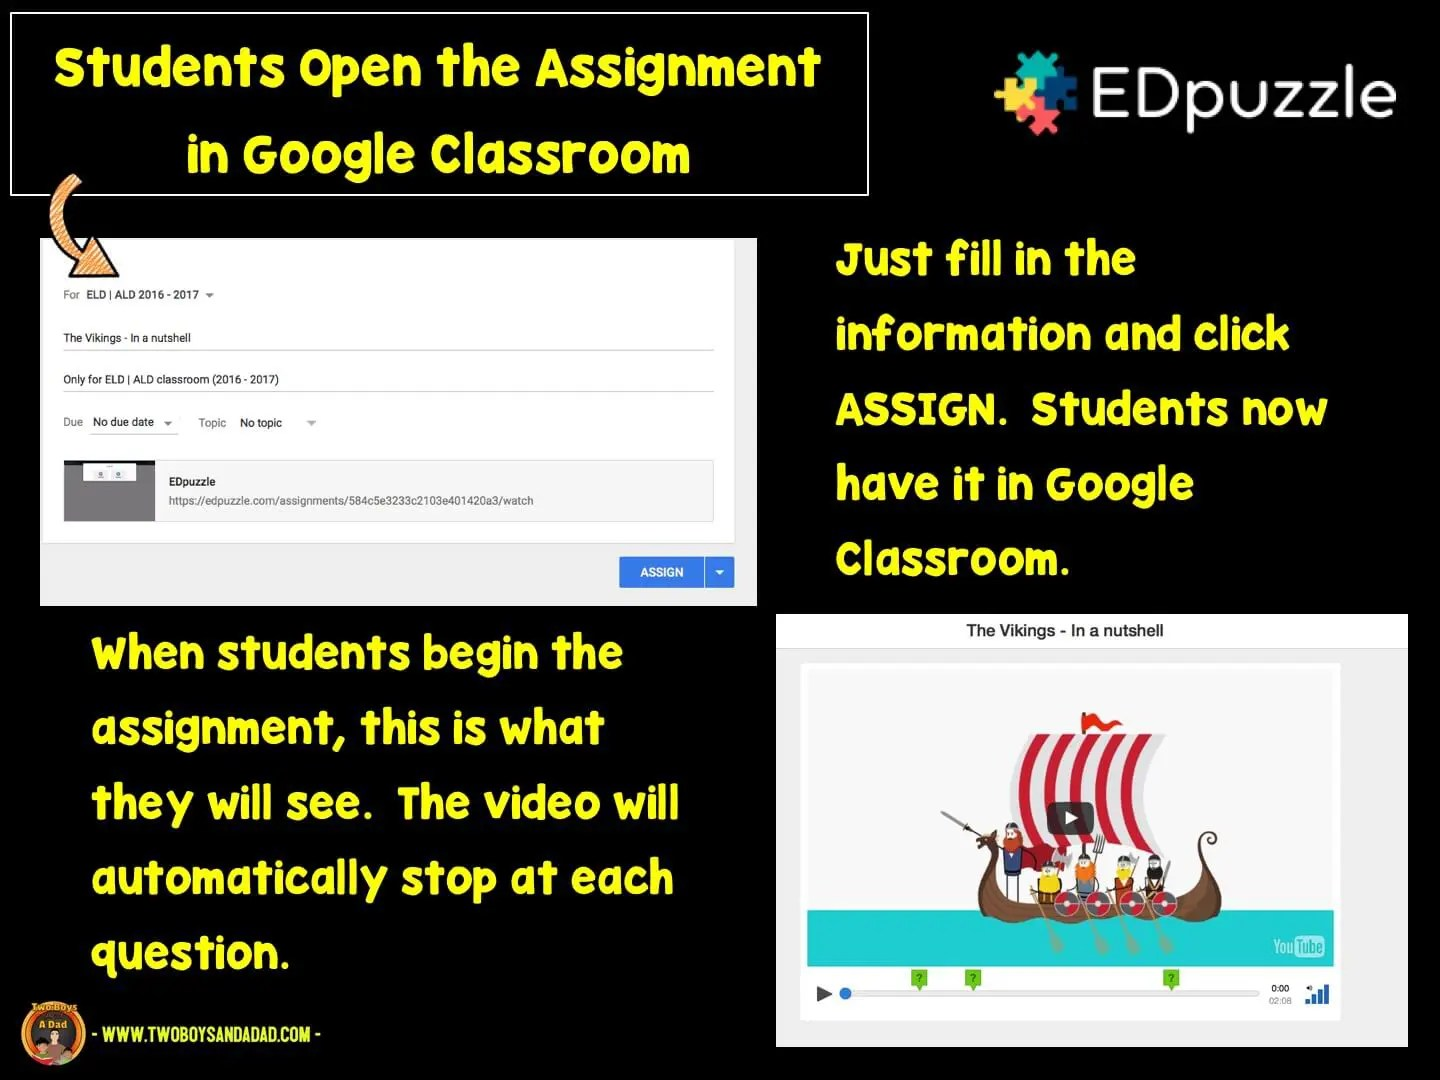 Students must answer the question to move on in the video